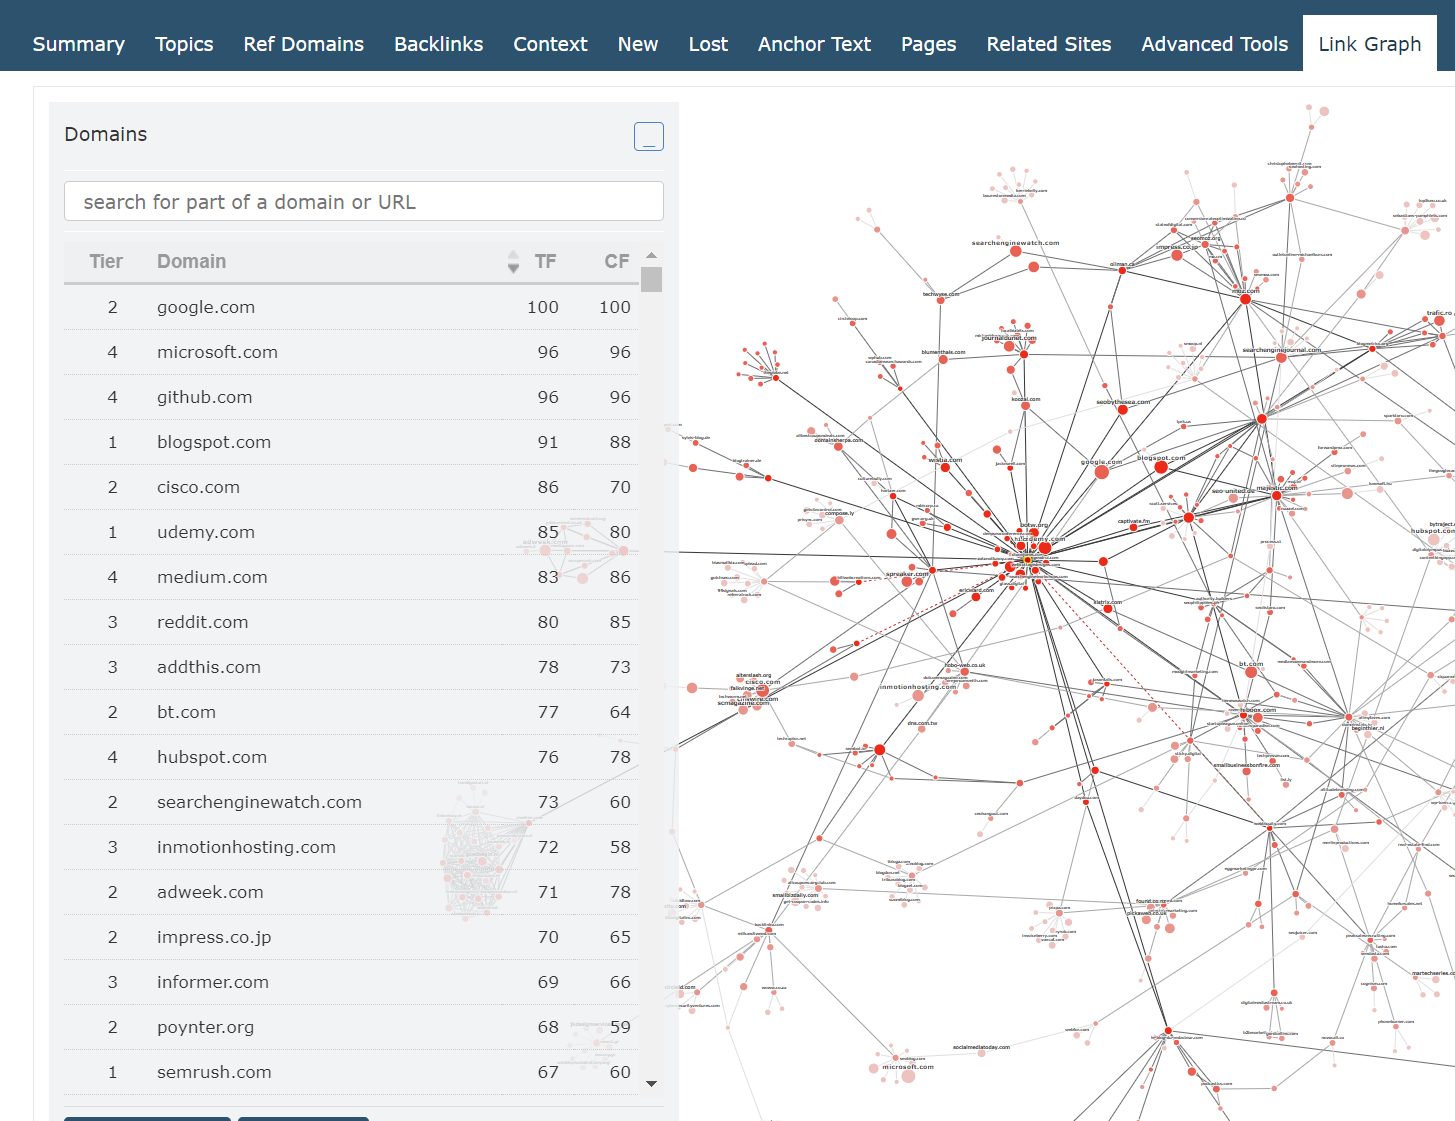 Showing how you can sort link graph results by Trust Flow